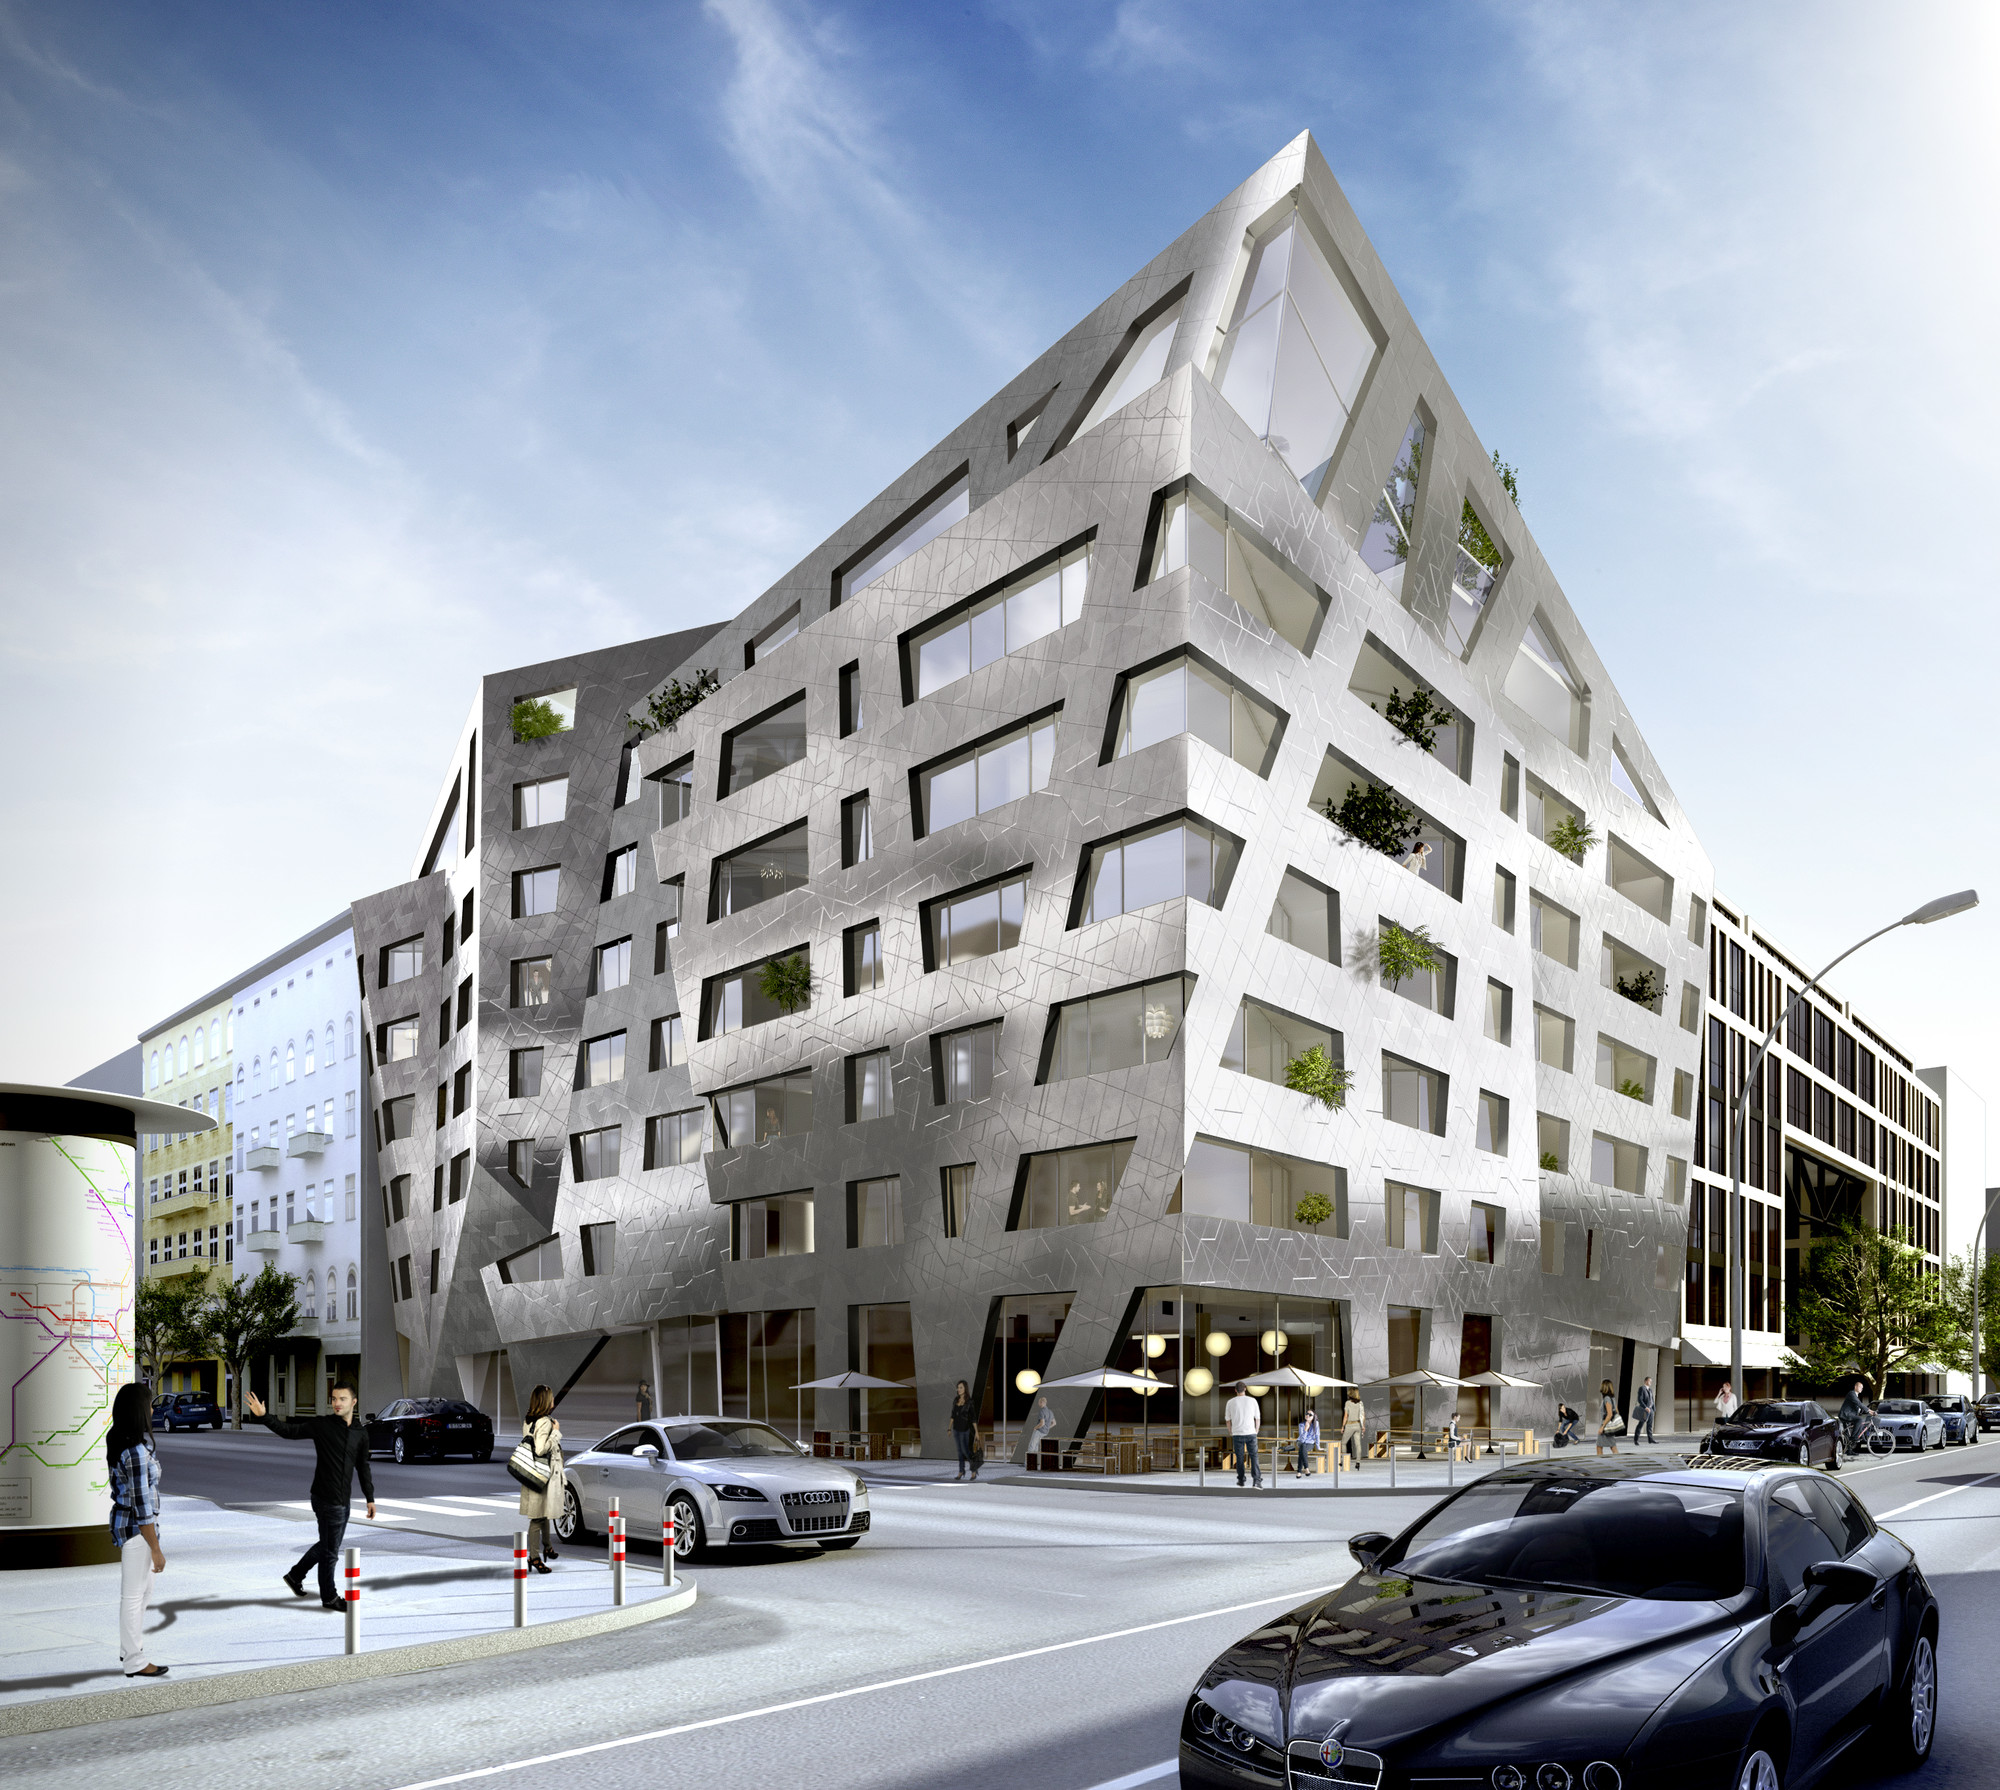 Daniel libeskind designs apartment building for berlin for Building designer